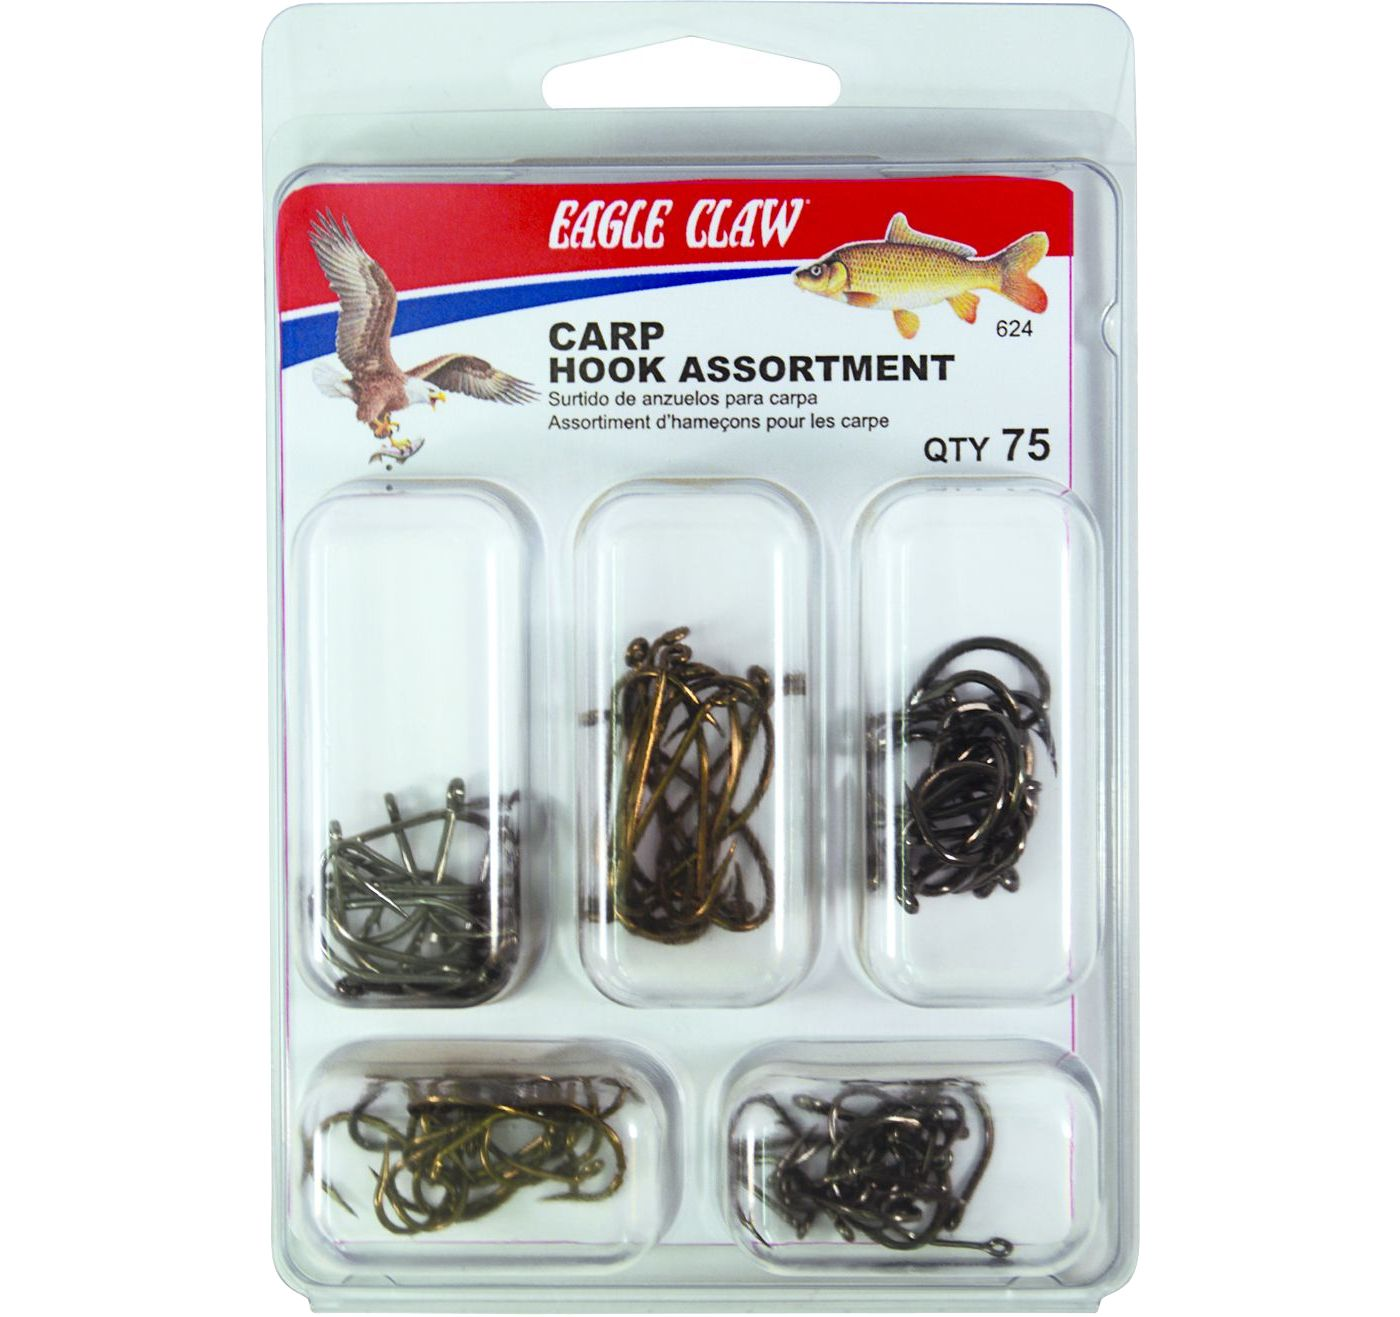 Eagle Claw Carp Hook Kit